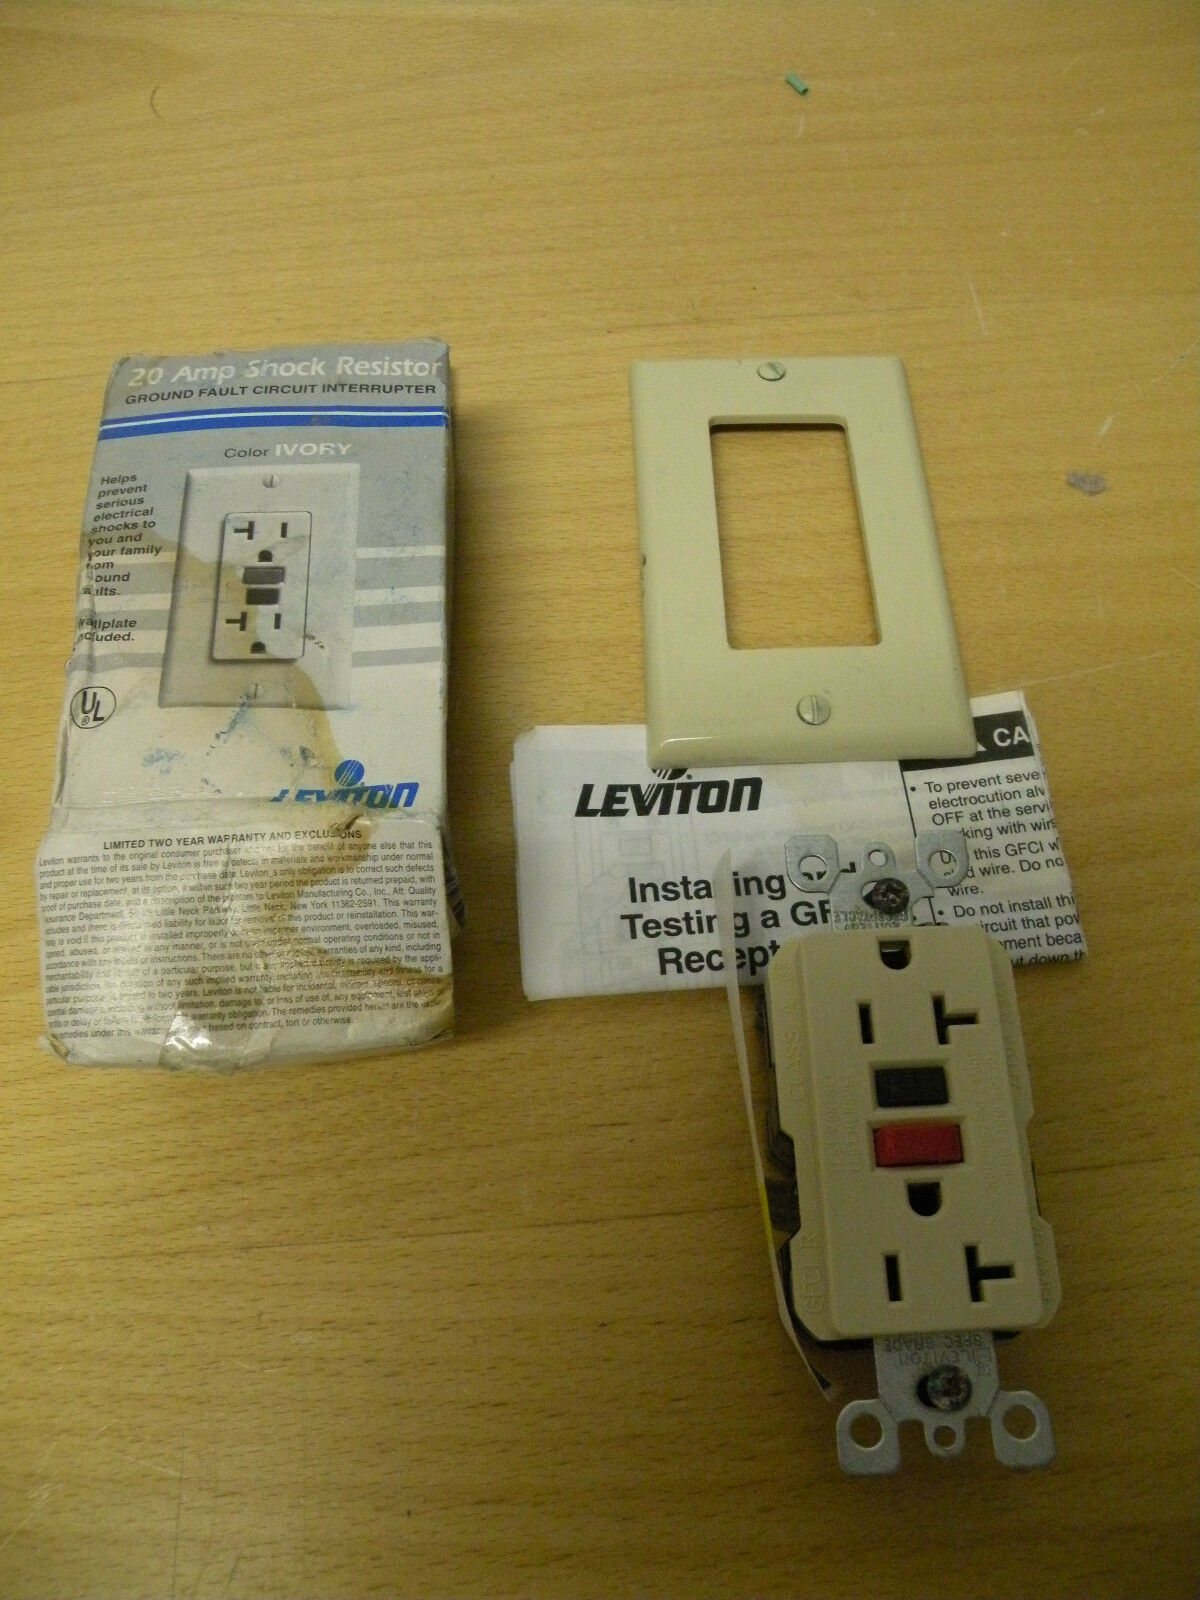 43189 Old-stock Leviton 631-6889-i Shock Resistor 20 Amp Outlet | eBay